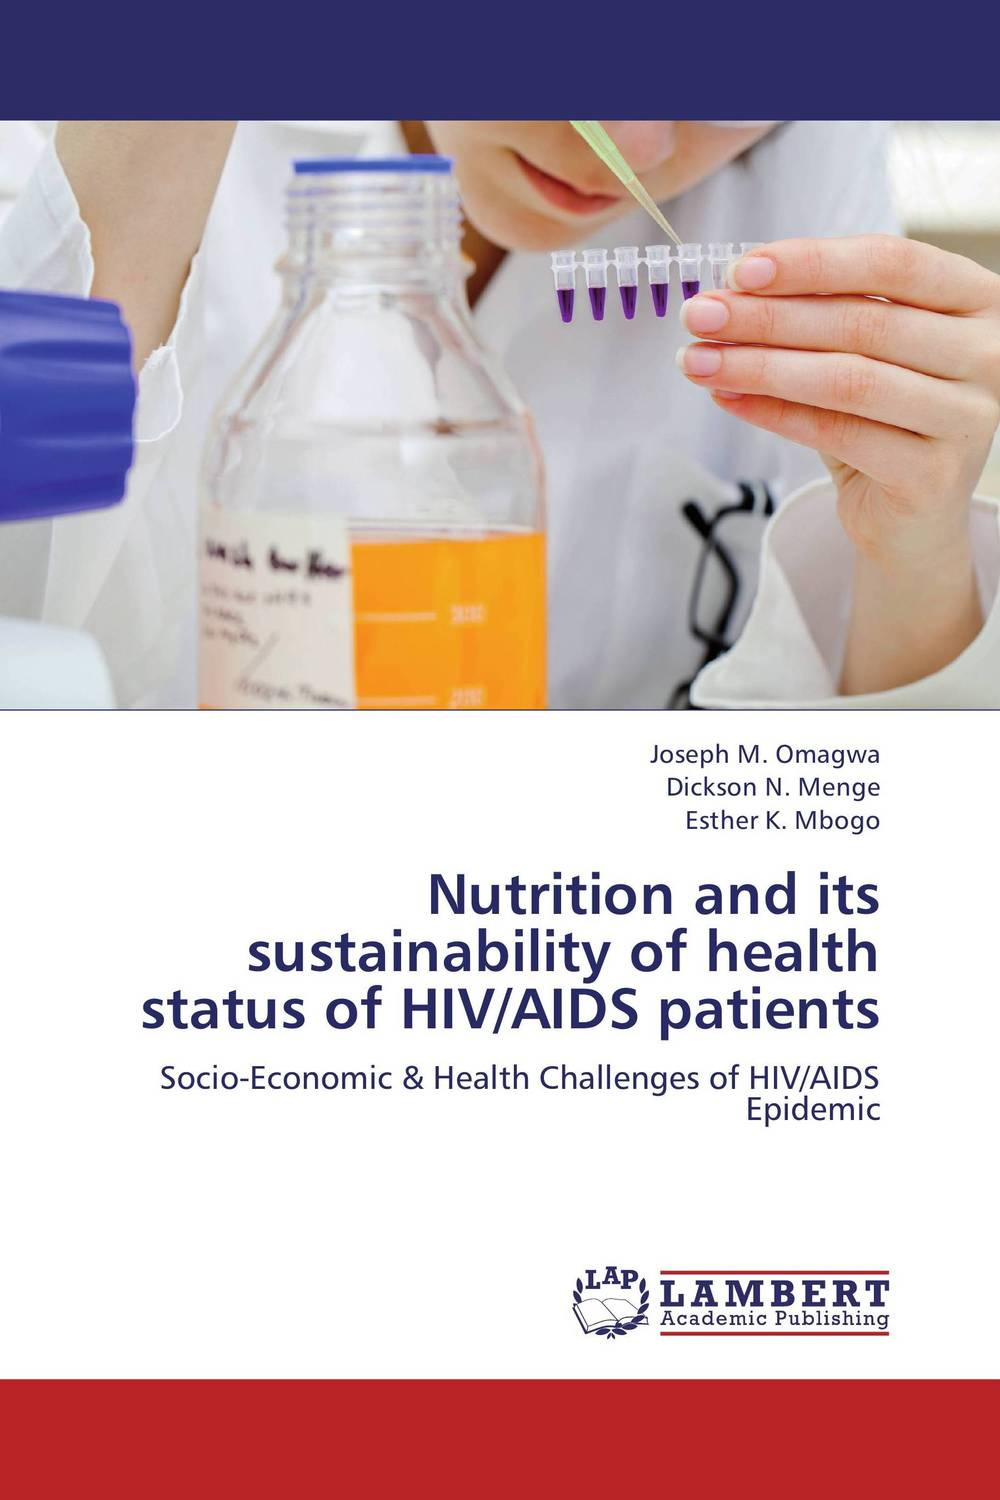 Nutrition and its sustainability of health status of HIV/AIDS patients manuscript found in accra